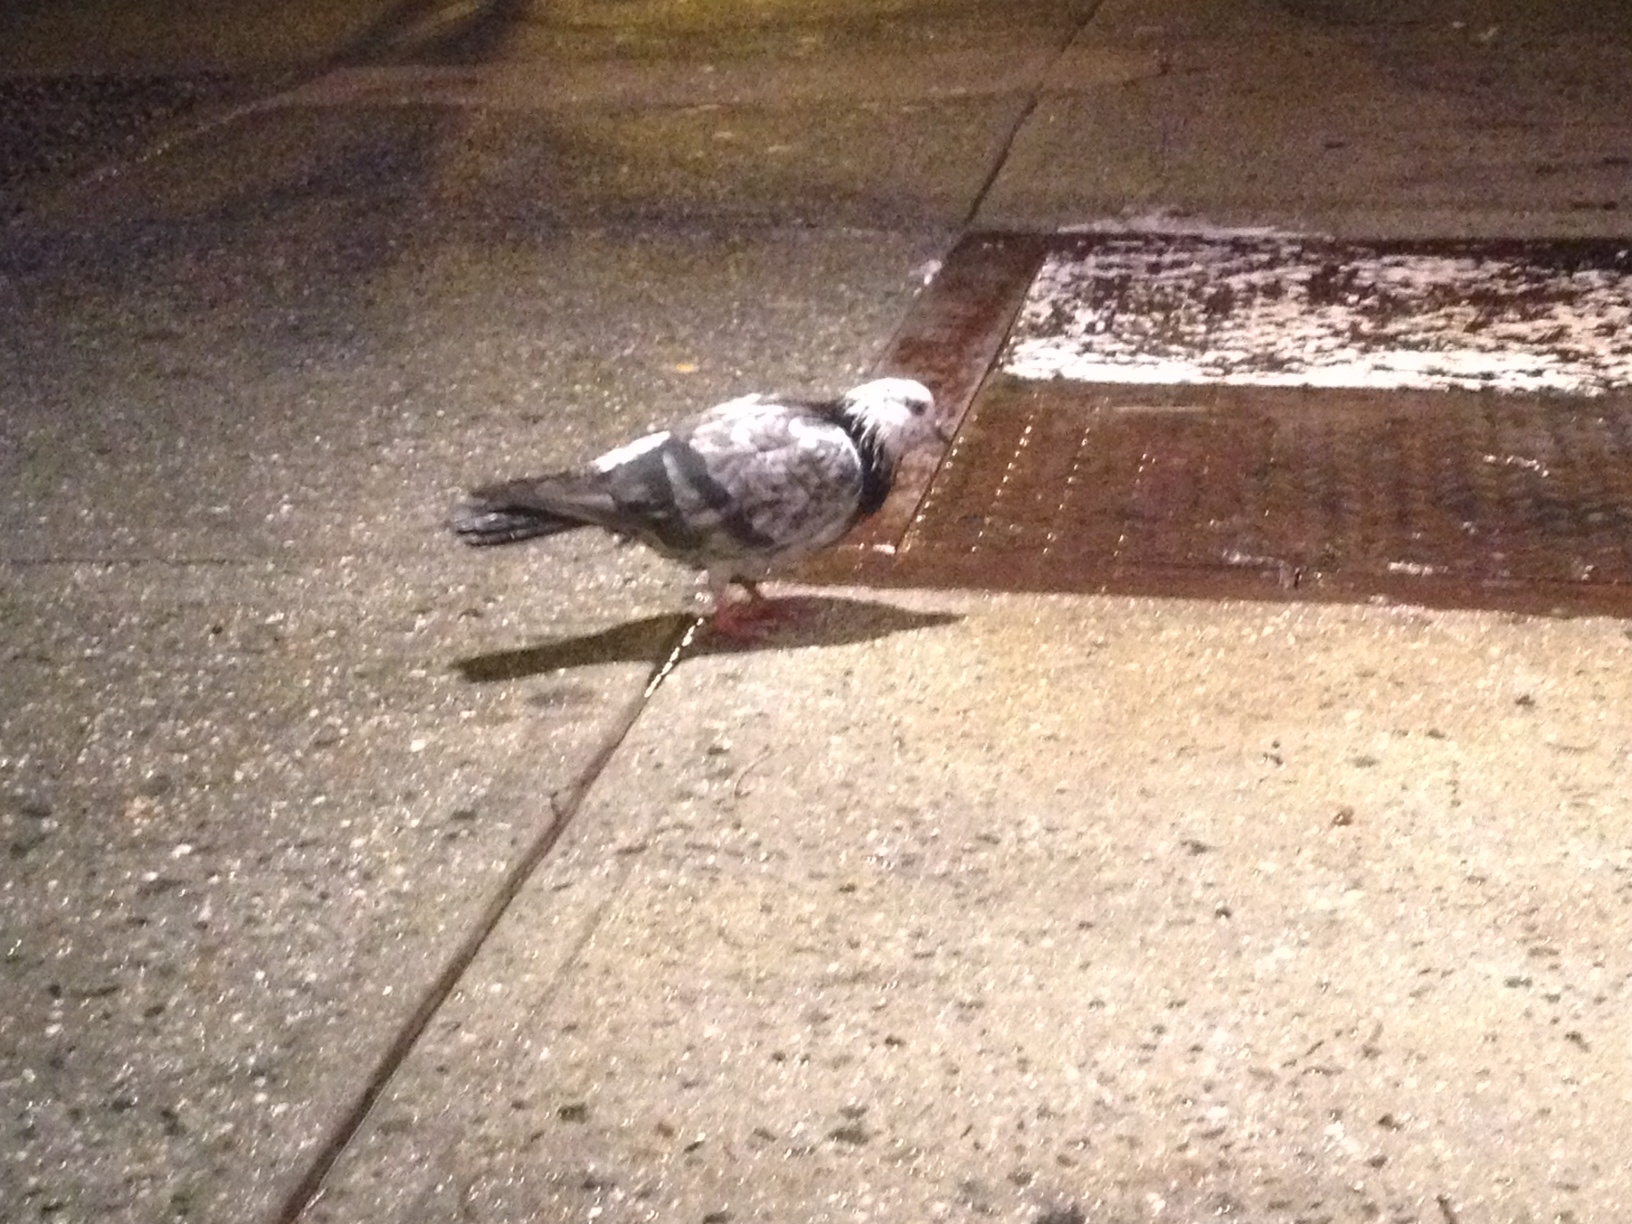 This Pigeon Lit Up the Night